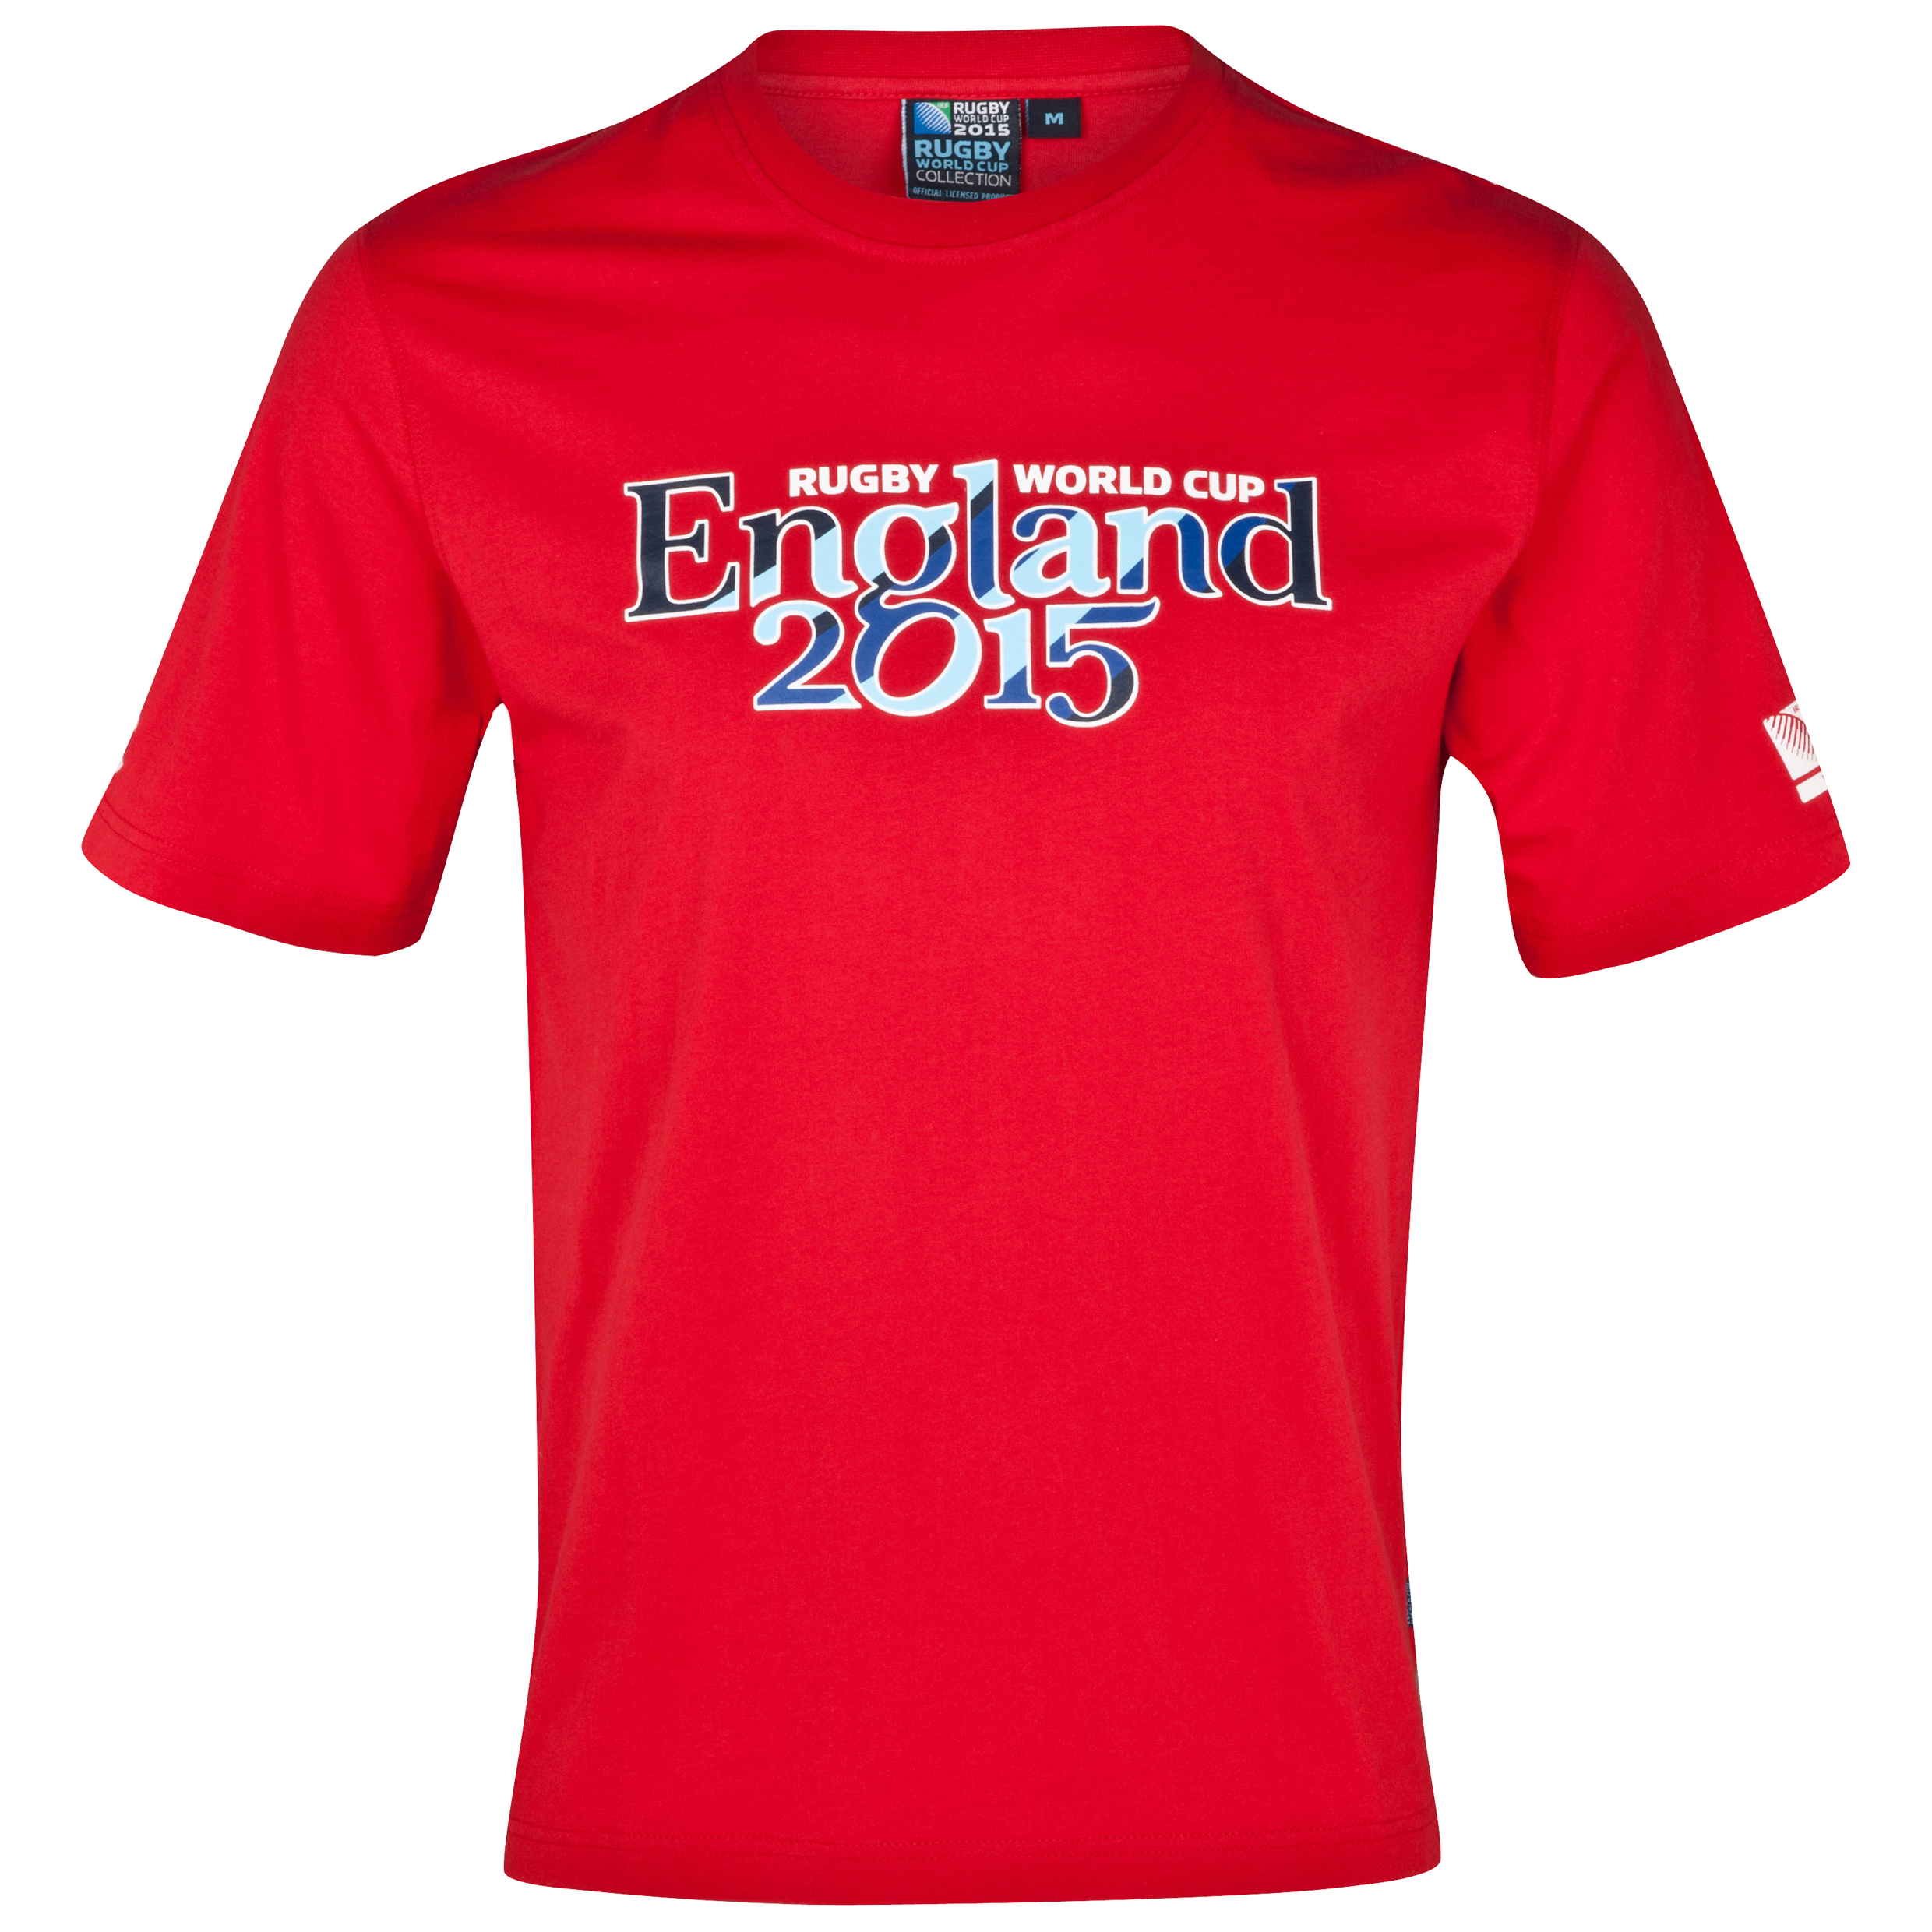 England Rugby World Cup 2015 Script T-Shirt - Red